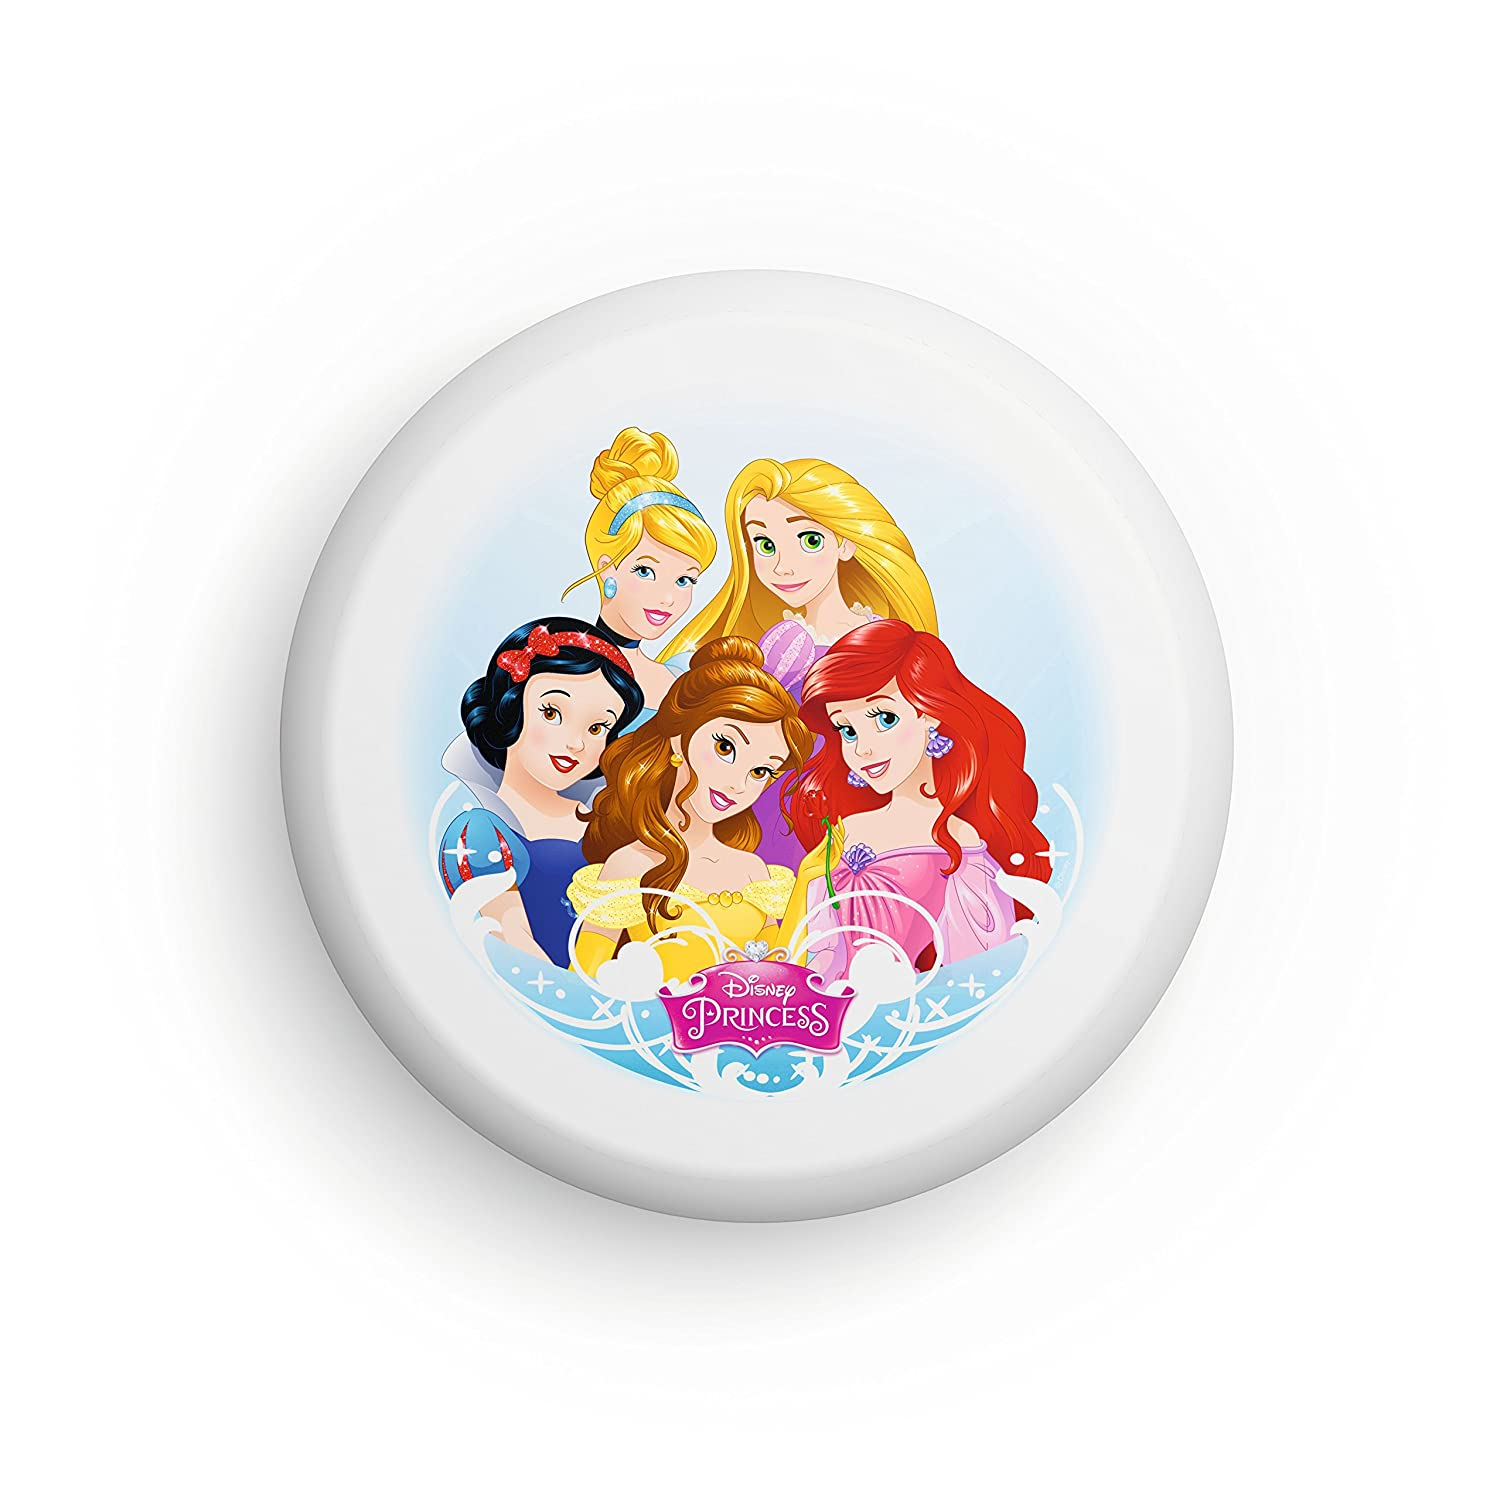 Philips Princess Iluminación Infantil, LED Integrado, Regulable, 24 W, Rosa 0915005309201